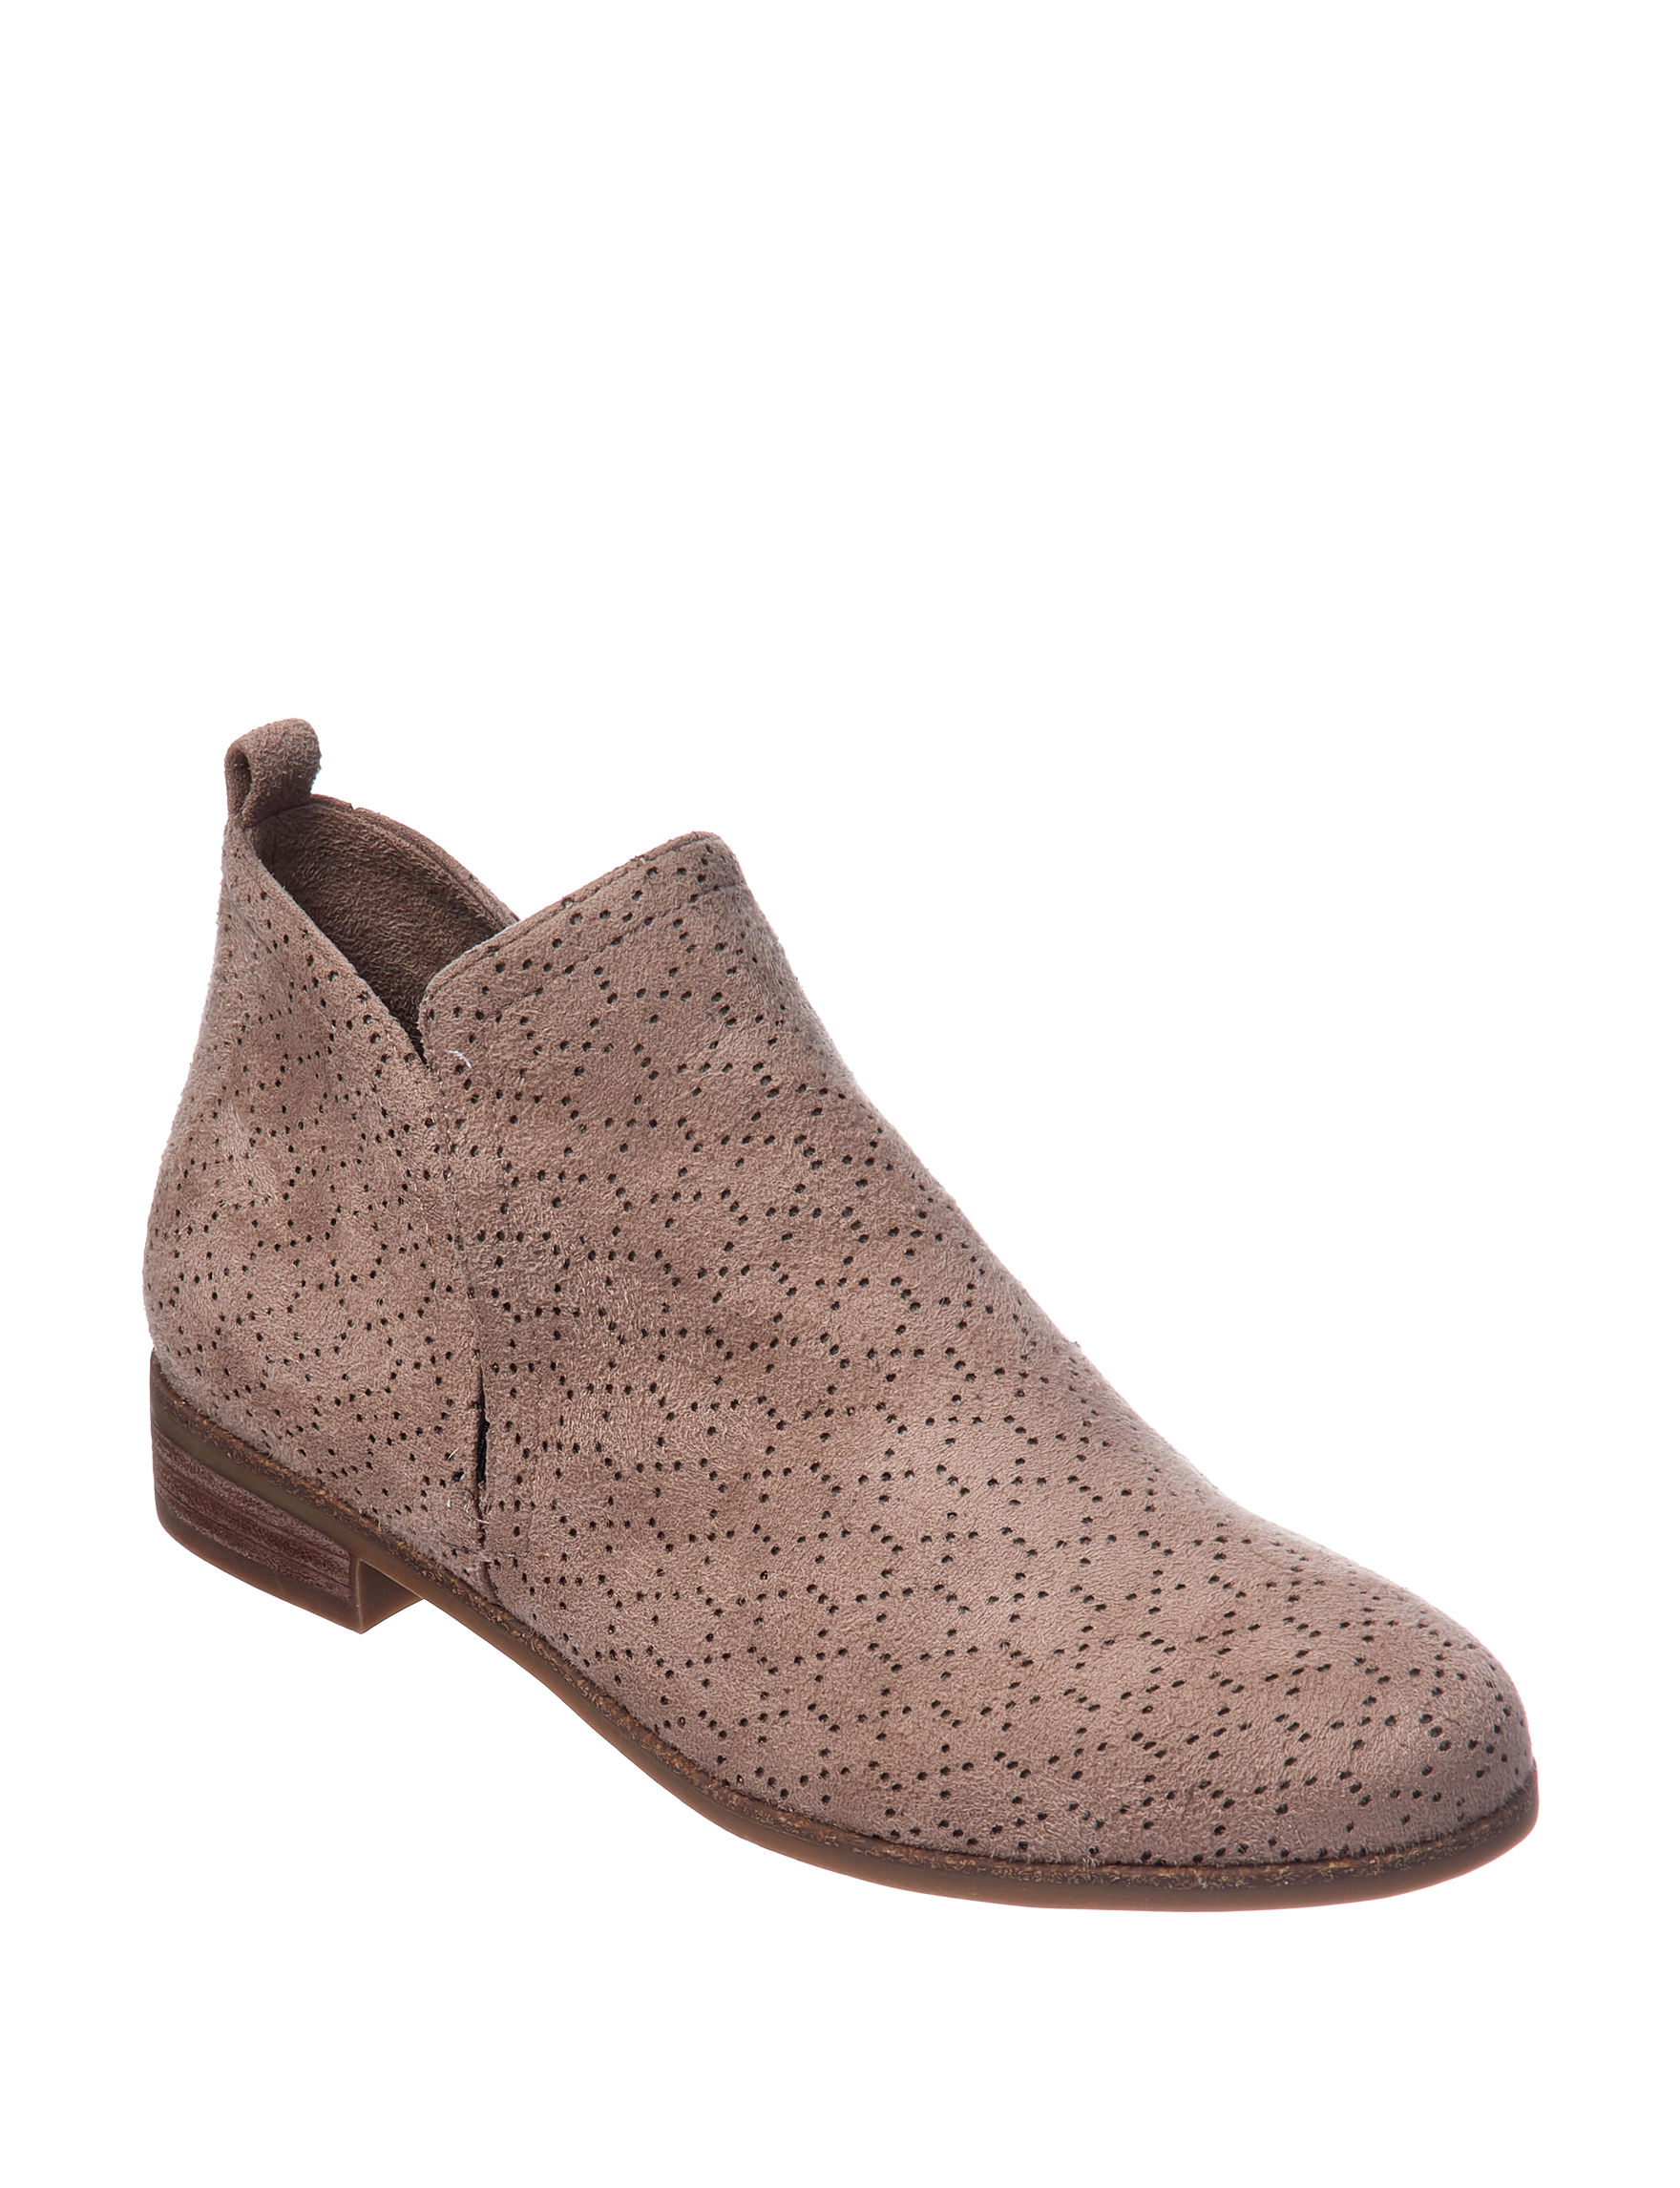 Dr. Scholl's Taupe Ankle Boots & Booties